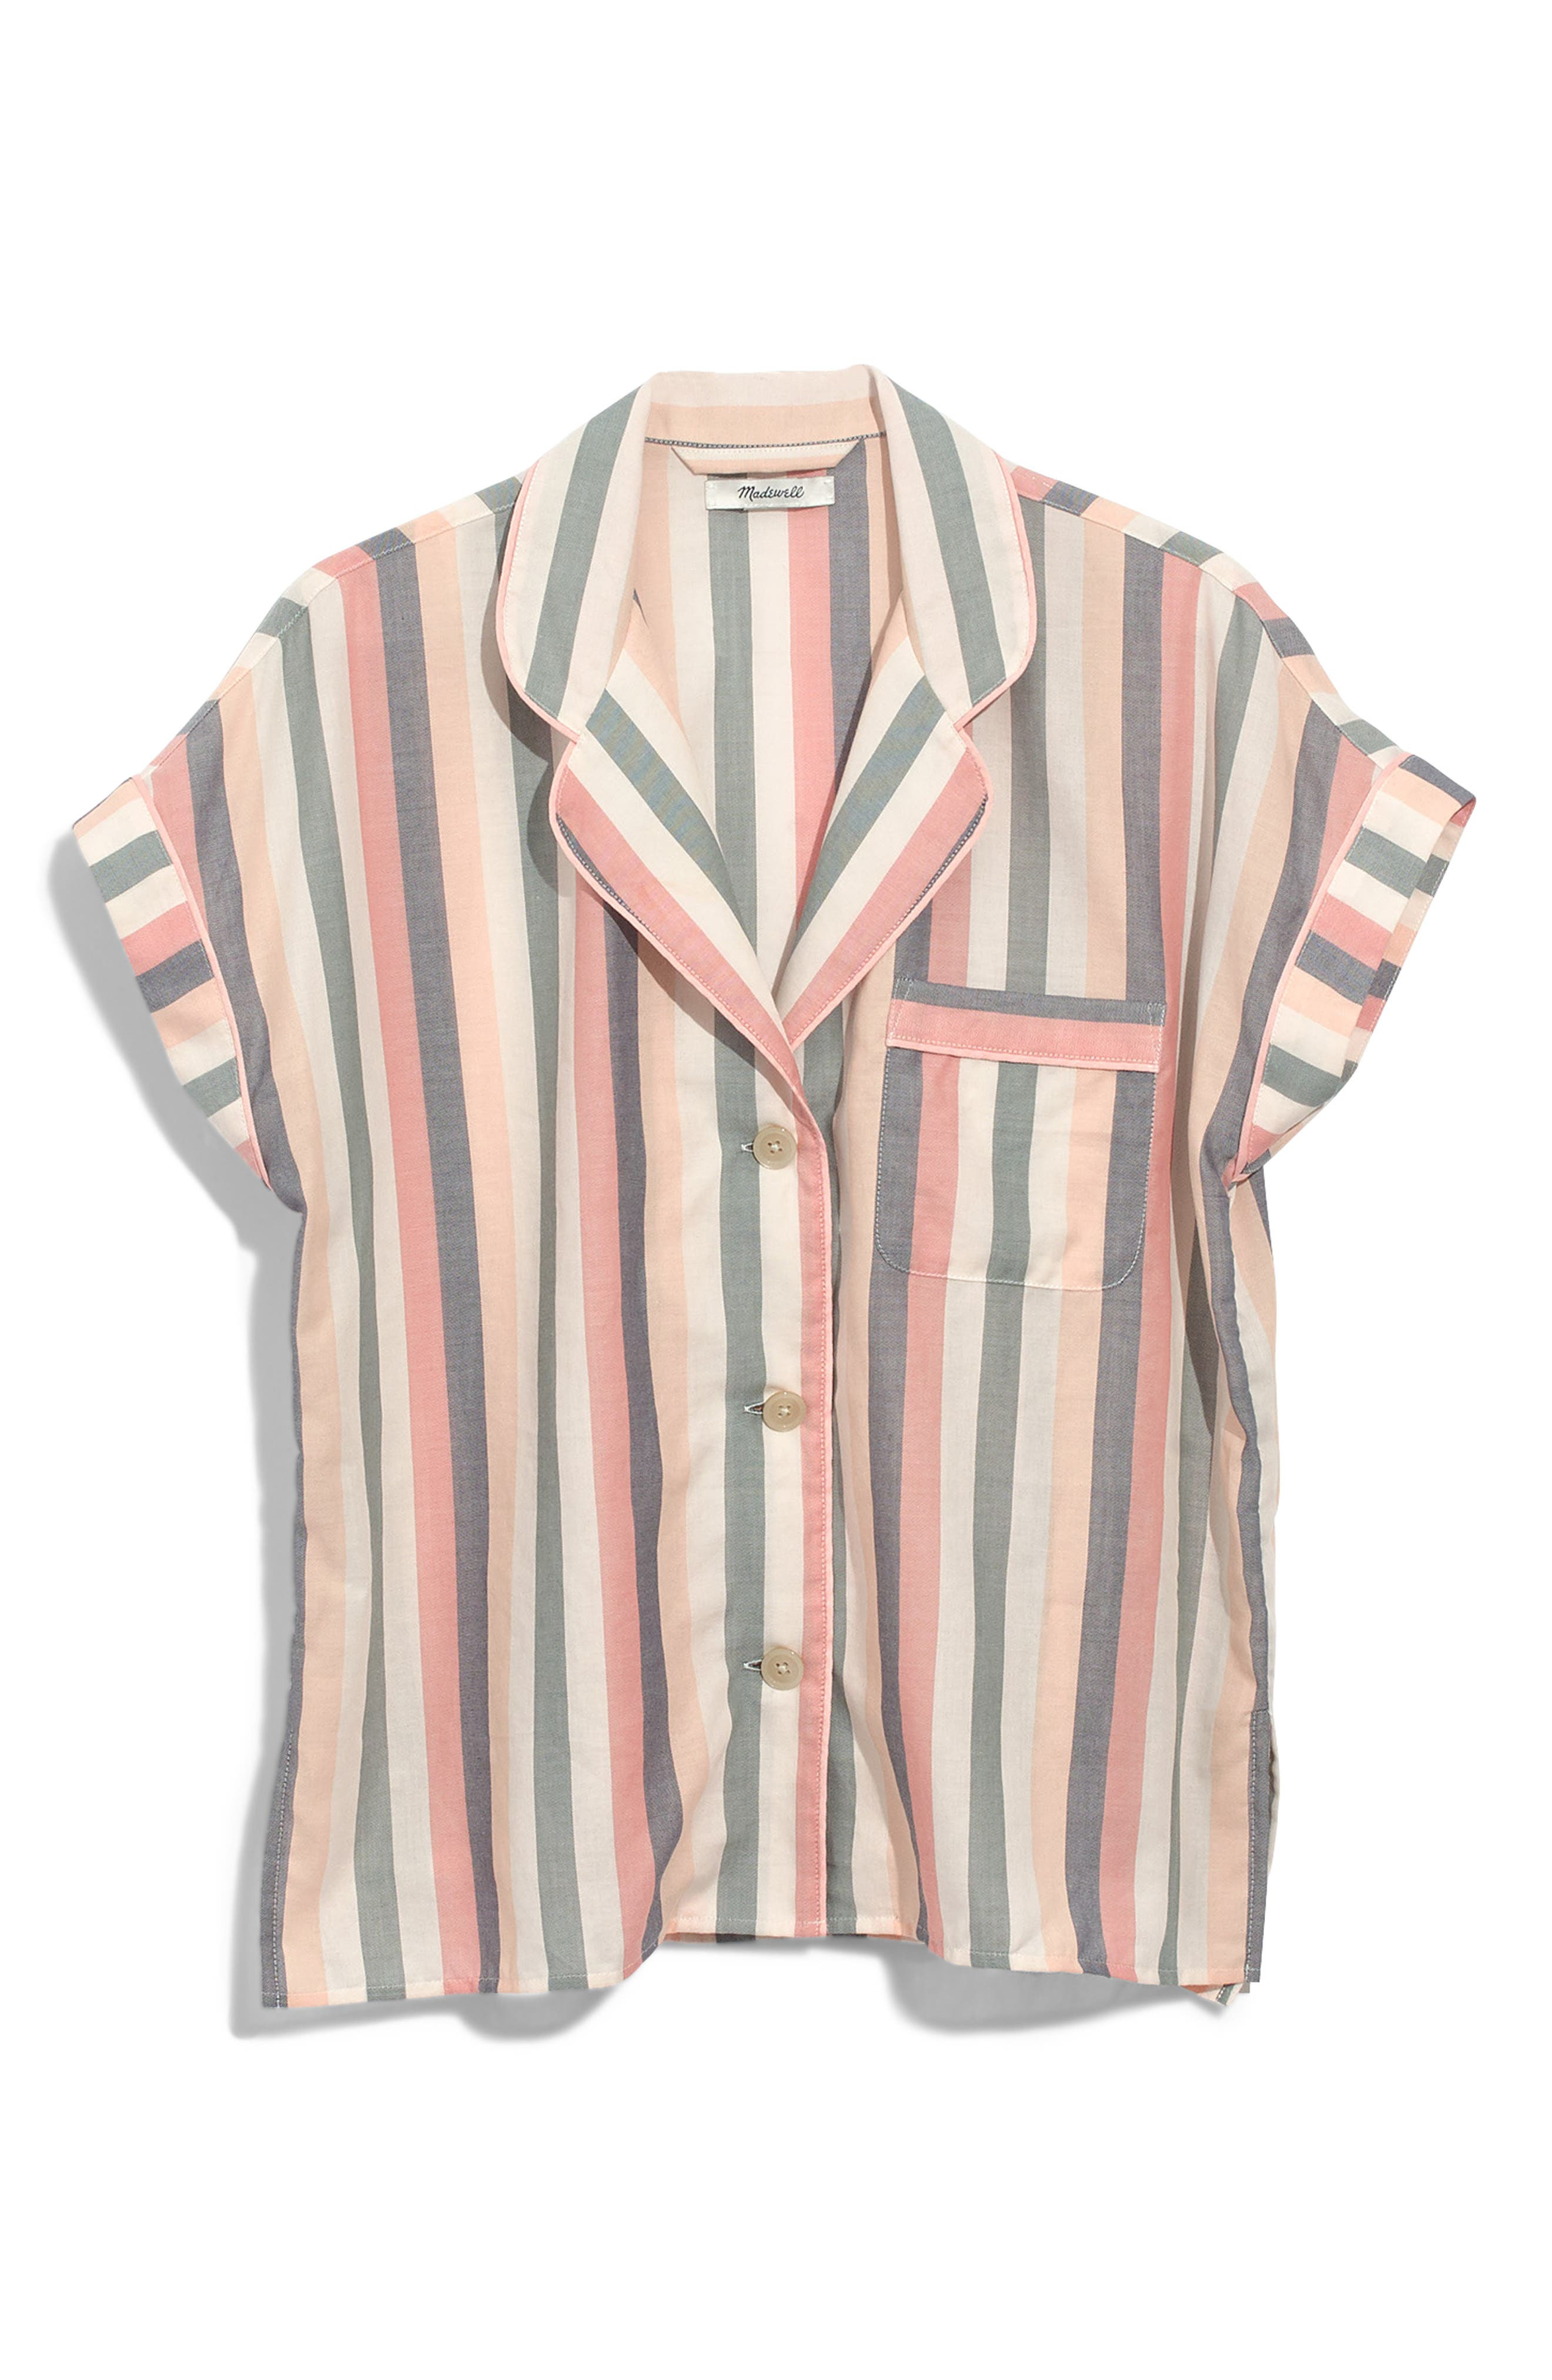 MADEWELL,                             Bedtime Lonnie Stripe Pajama Top,                             Alternate thumbnail 3, color,                             650